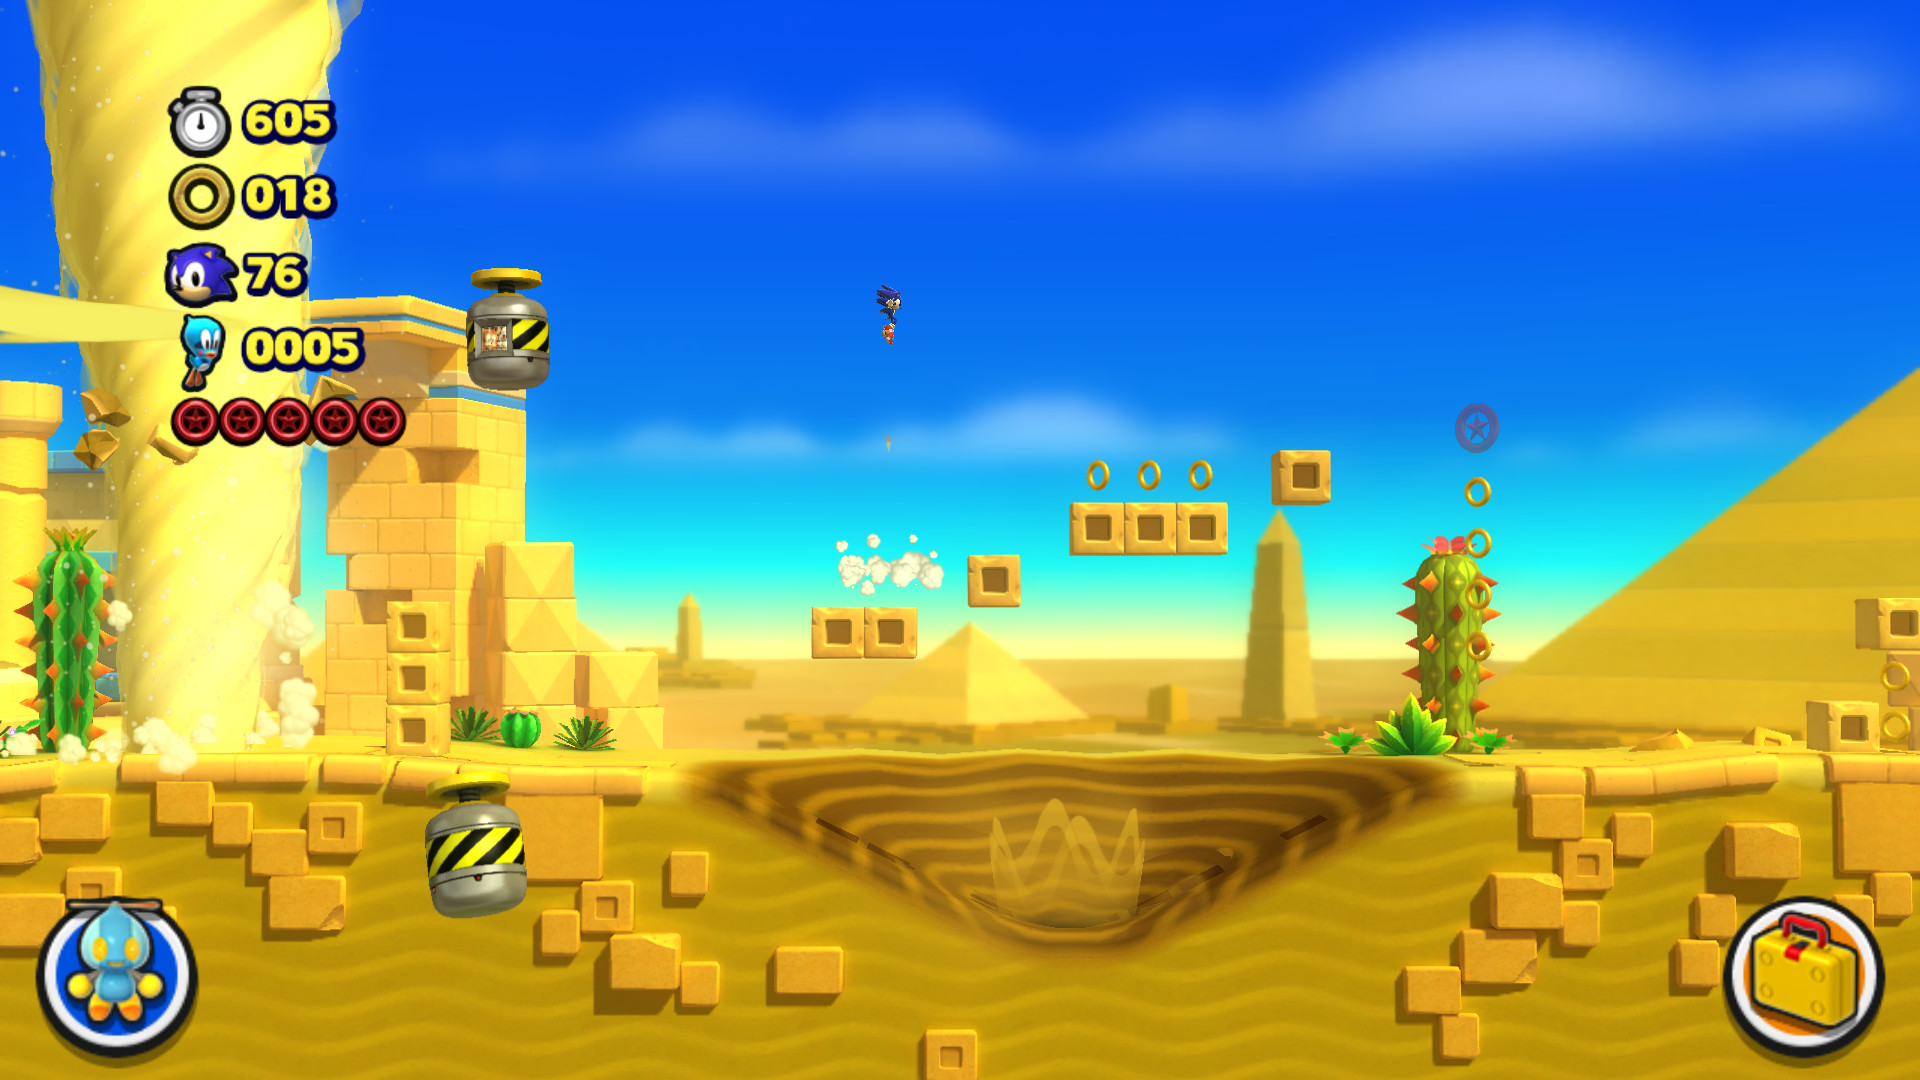 Sonic Lost World image 2